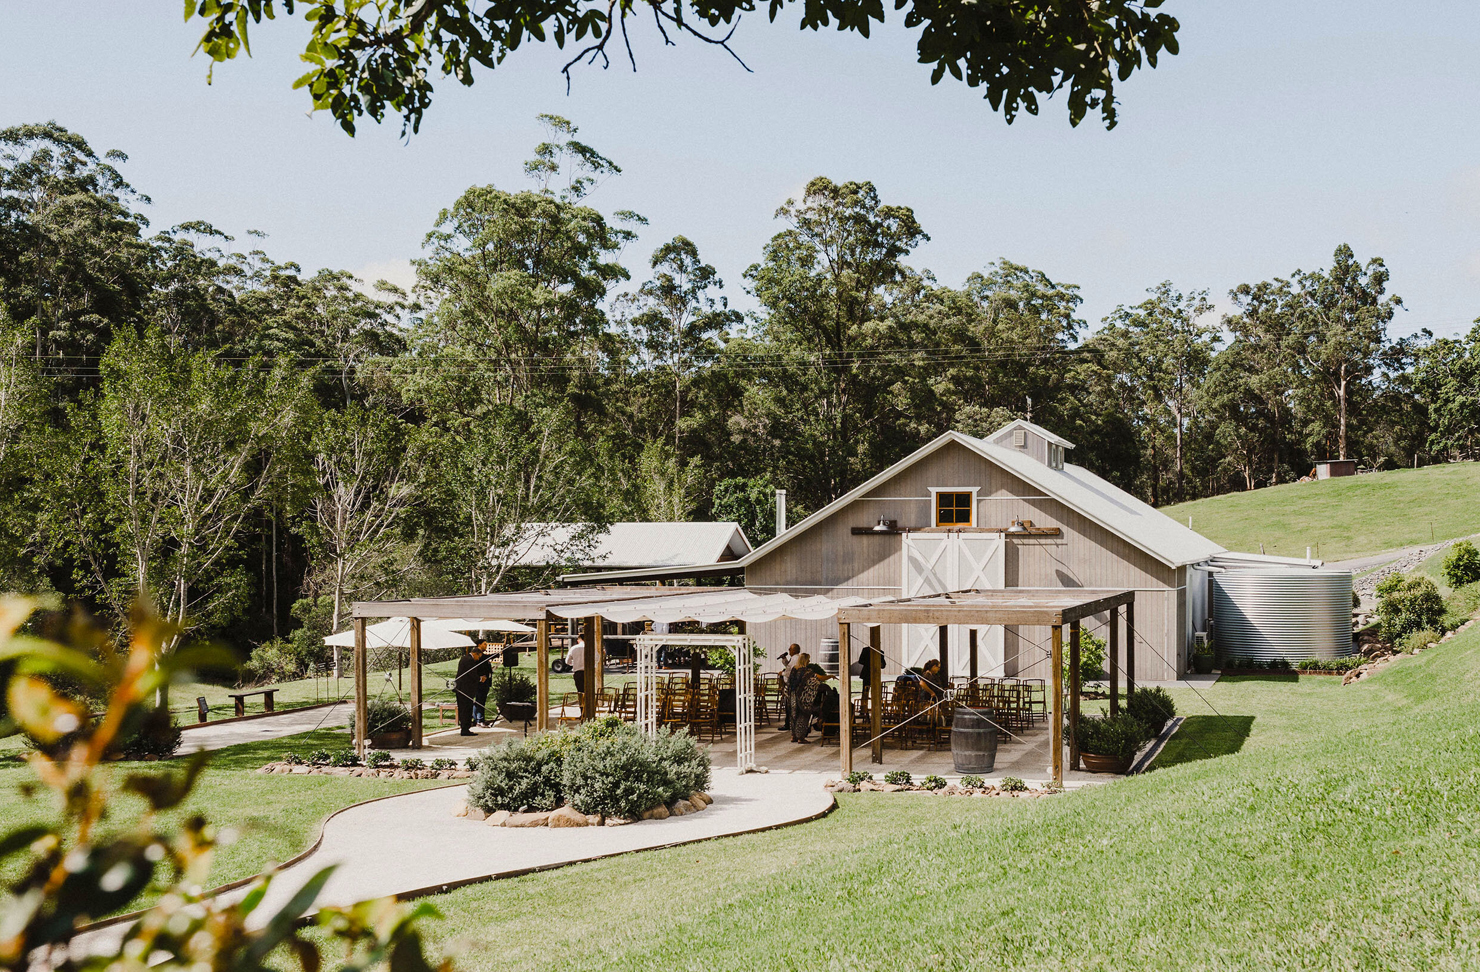 A country-style wedding venue in the foothills of Springbrook National Park.